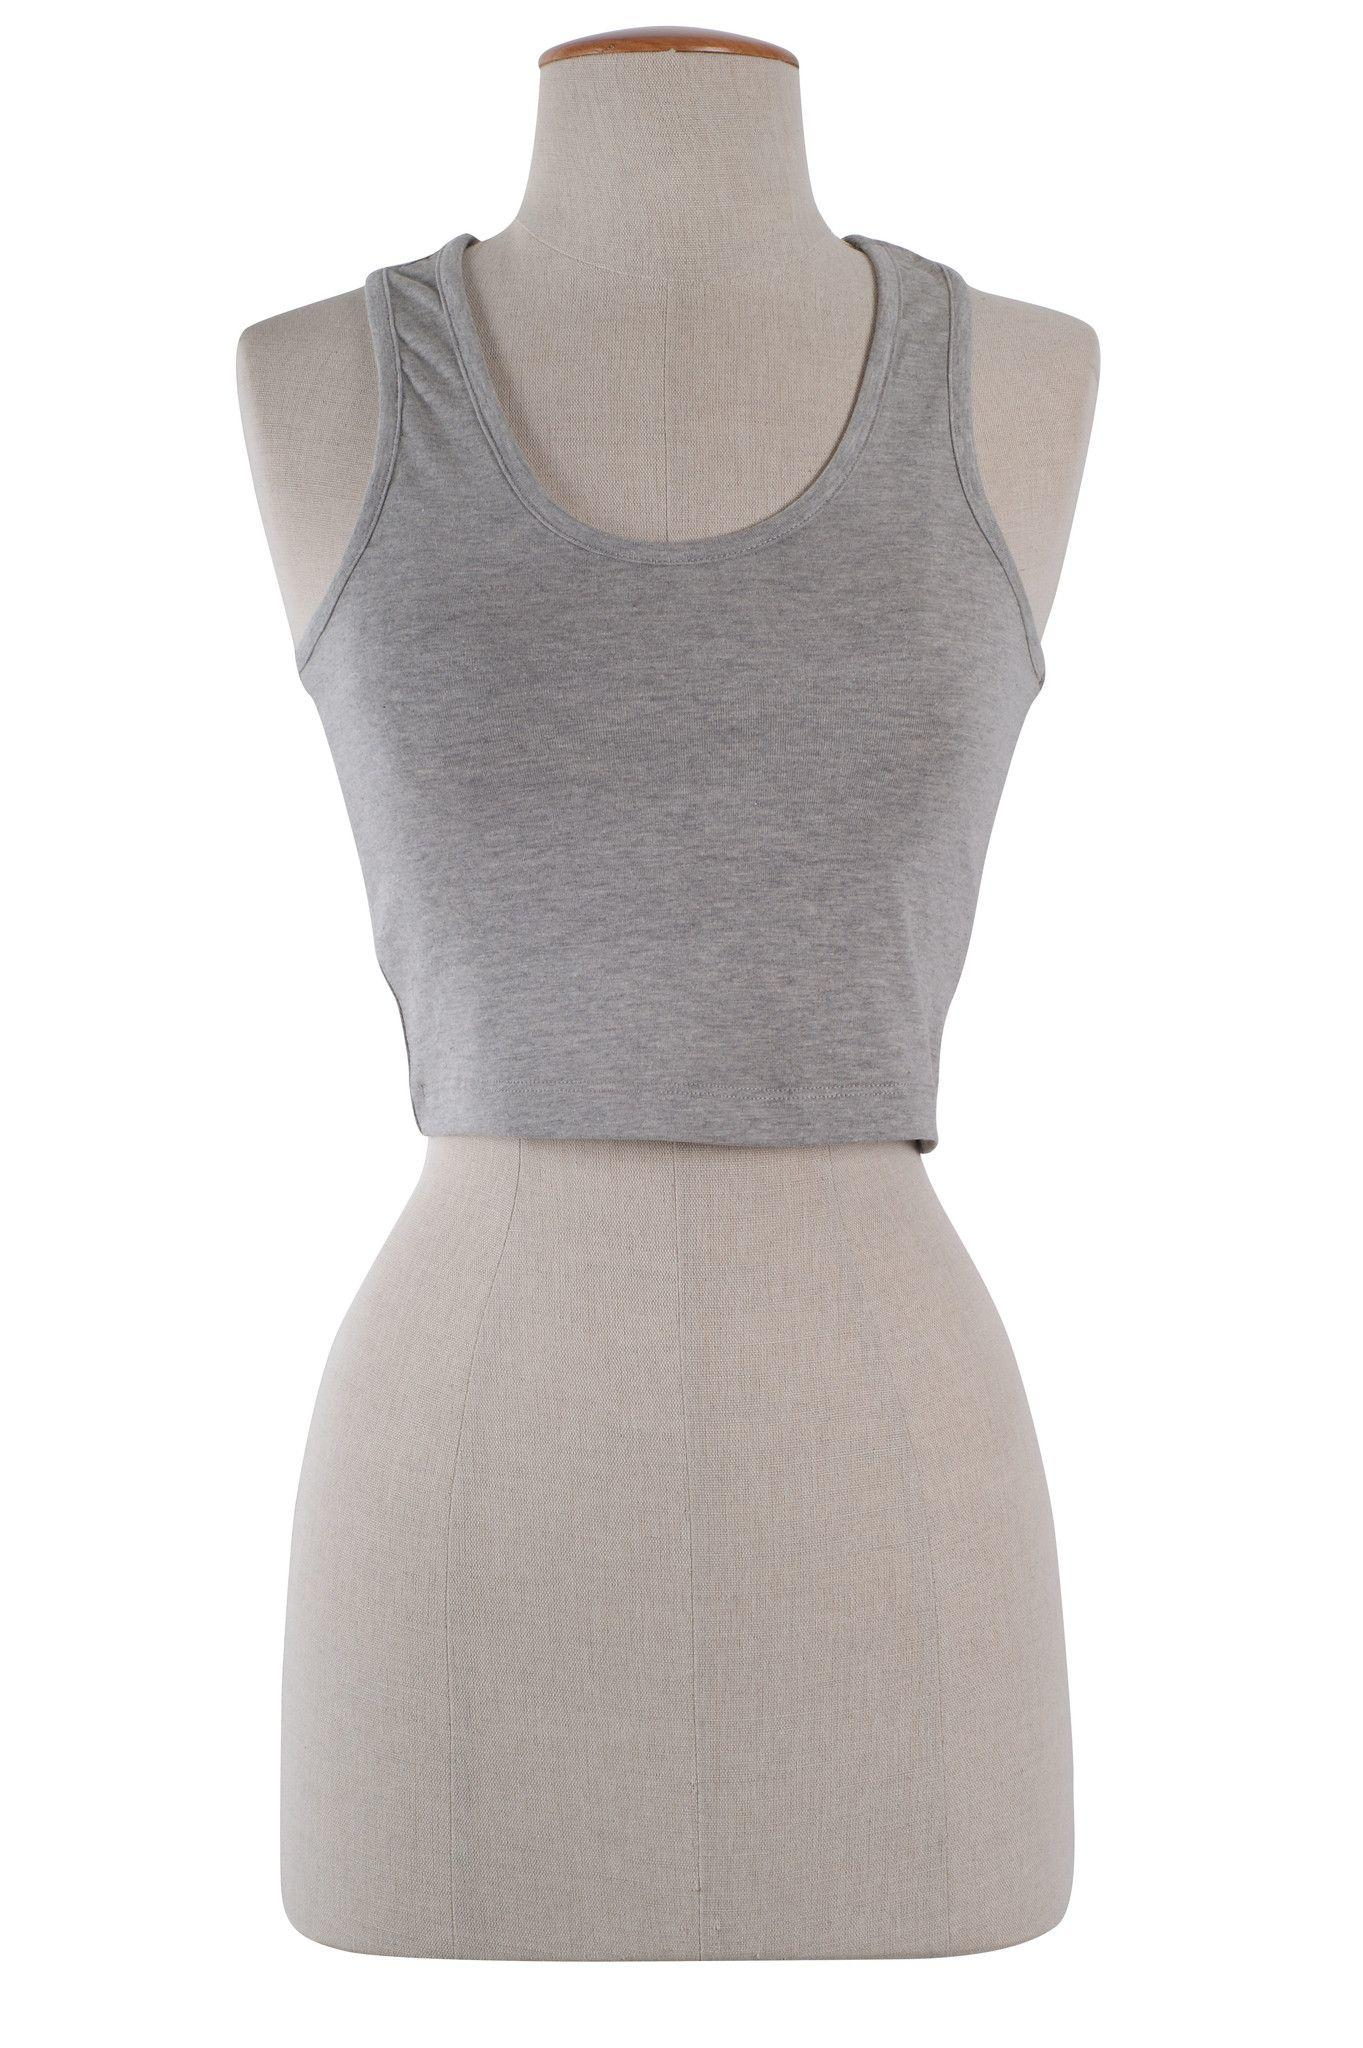 Image of Sexy Sleeveless Sports Cropped Cami Tank Top Scoop Neck Racerback Yoga Shirt